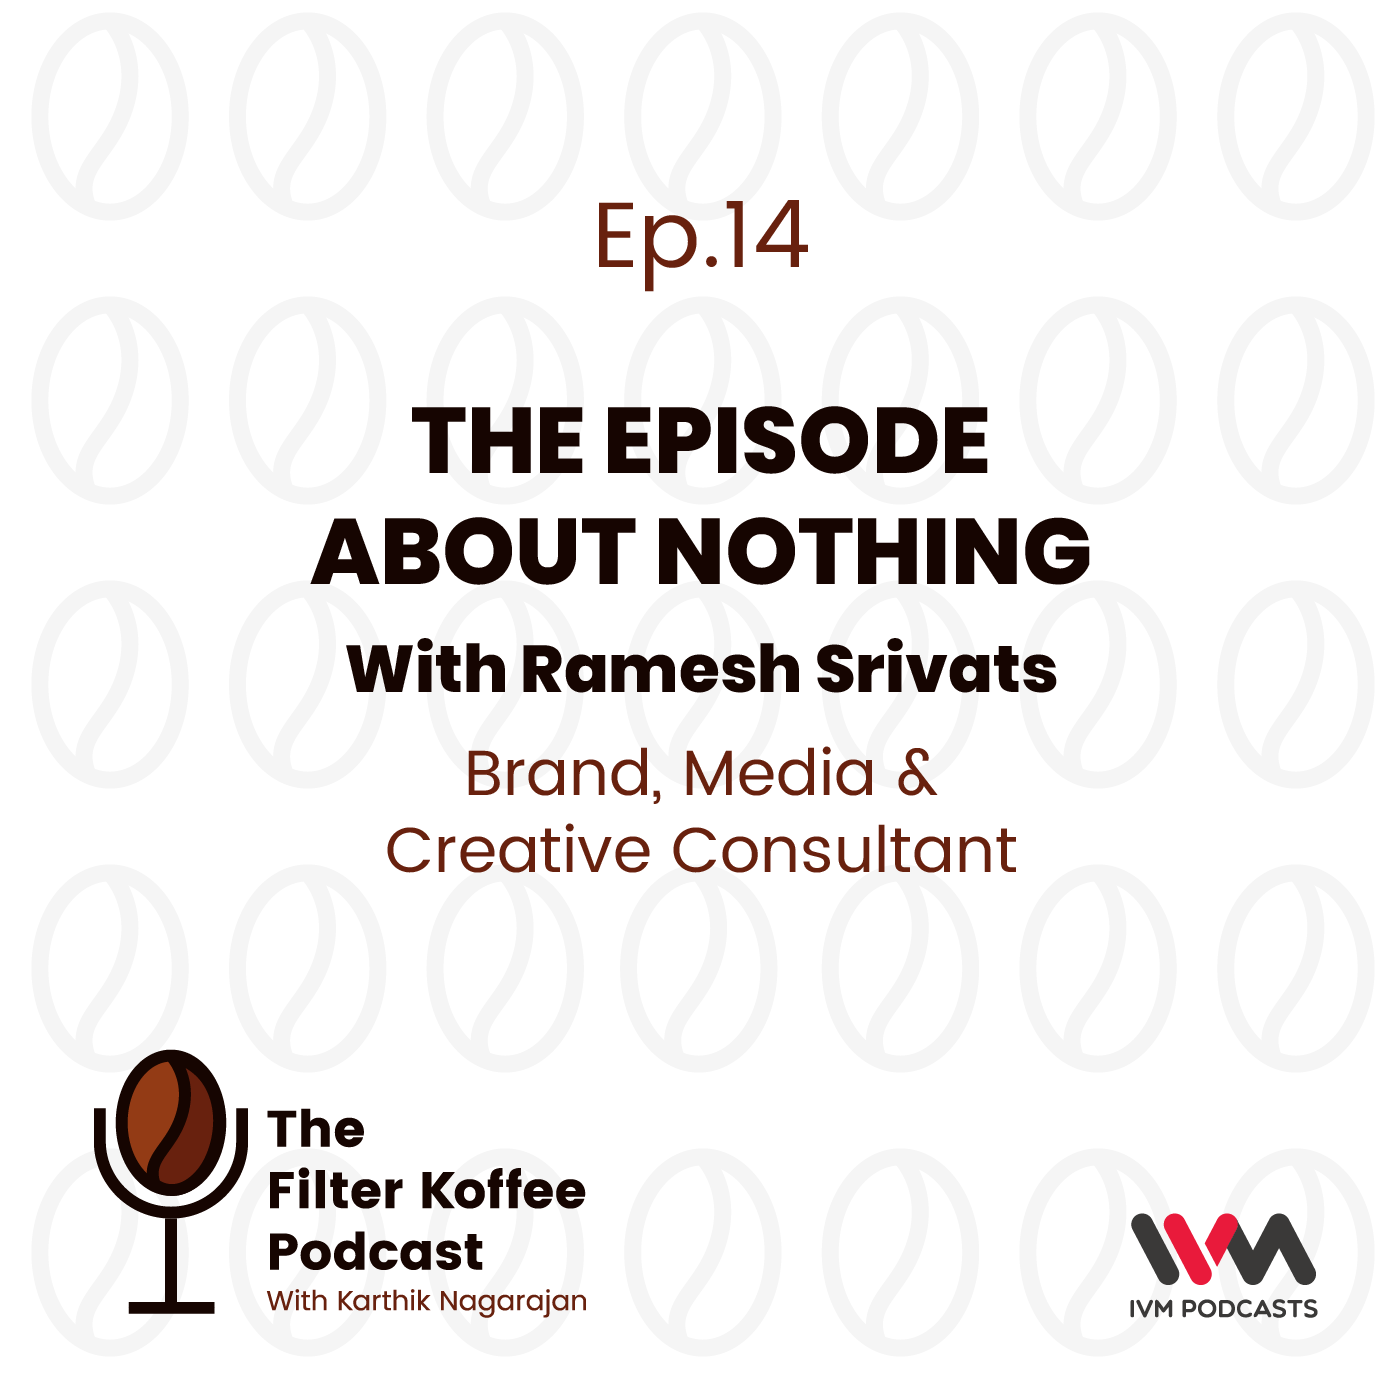 Ep. 14: The Episode About Nothing with Ramesh Srivats